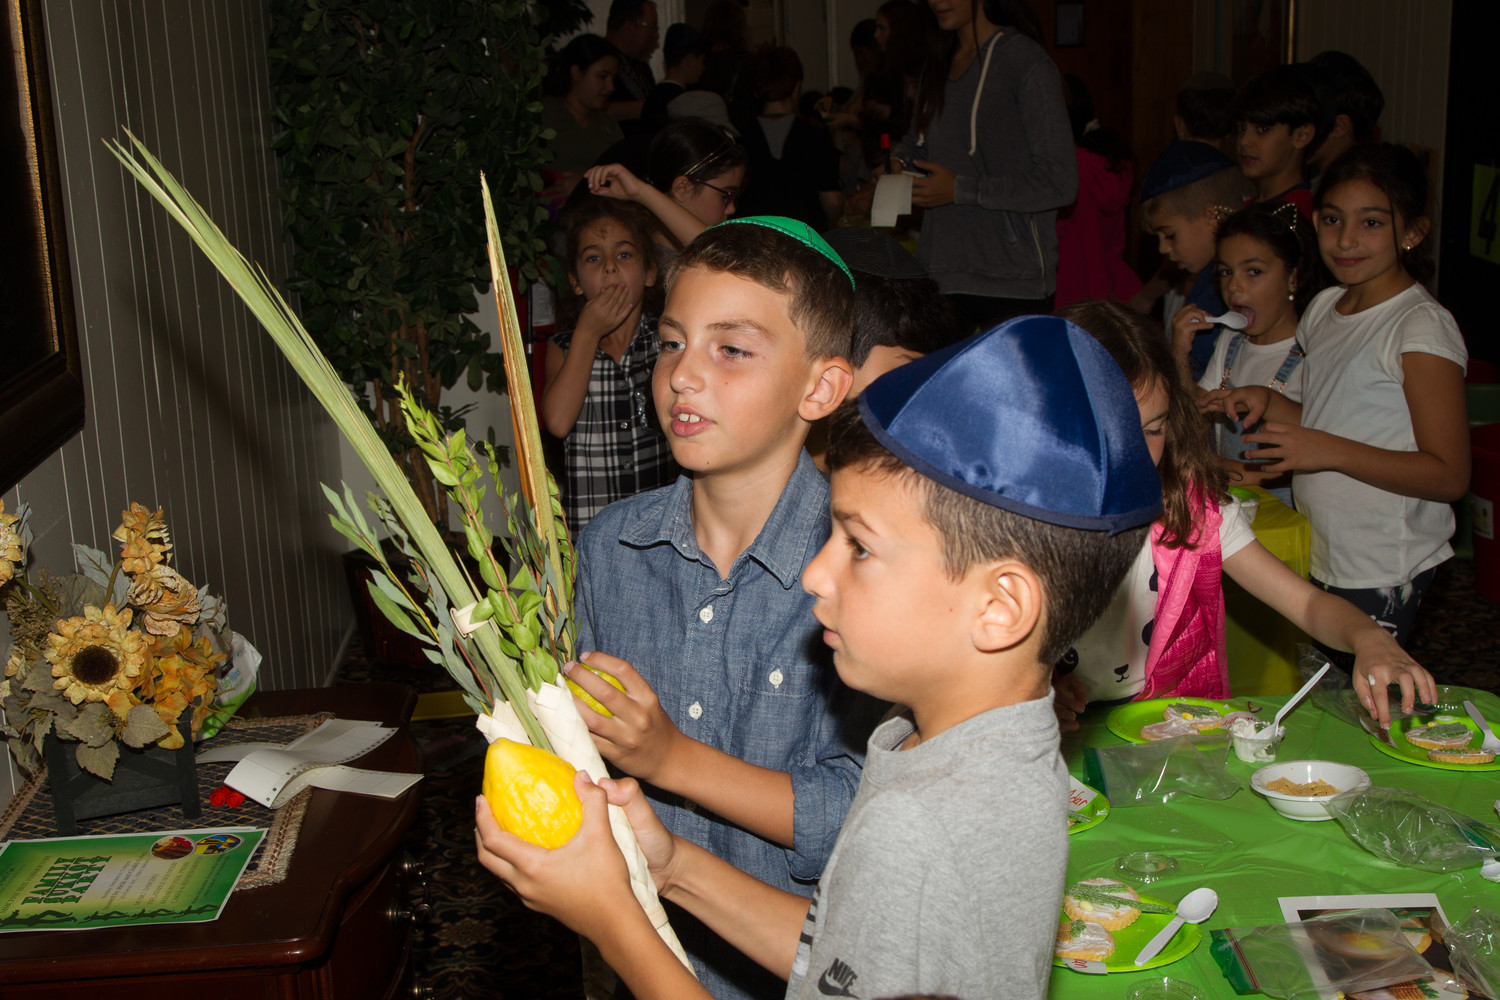 Sunday school students from the Chabad ceremoniously shook the lulav and etrog three times.